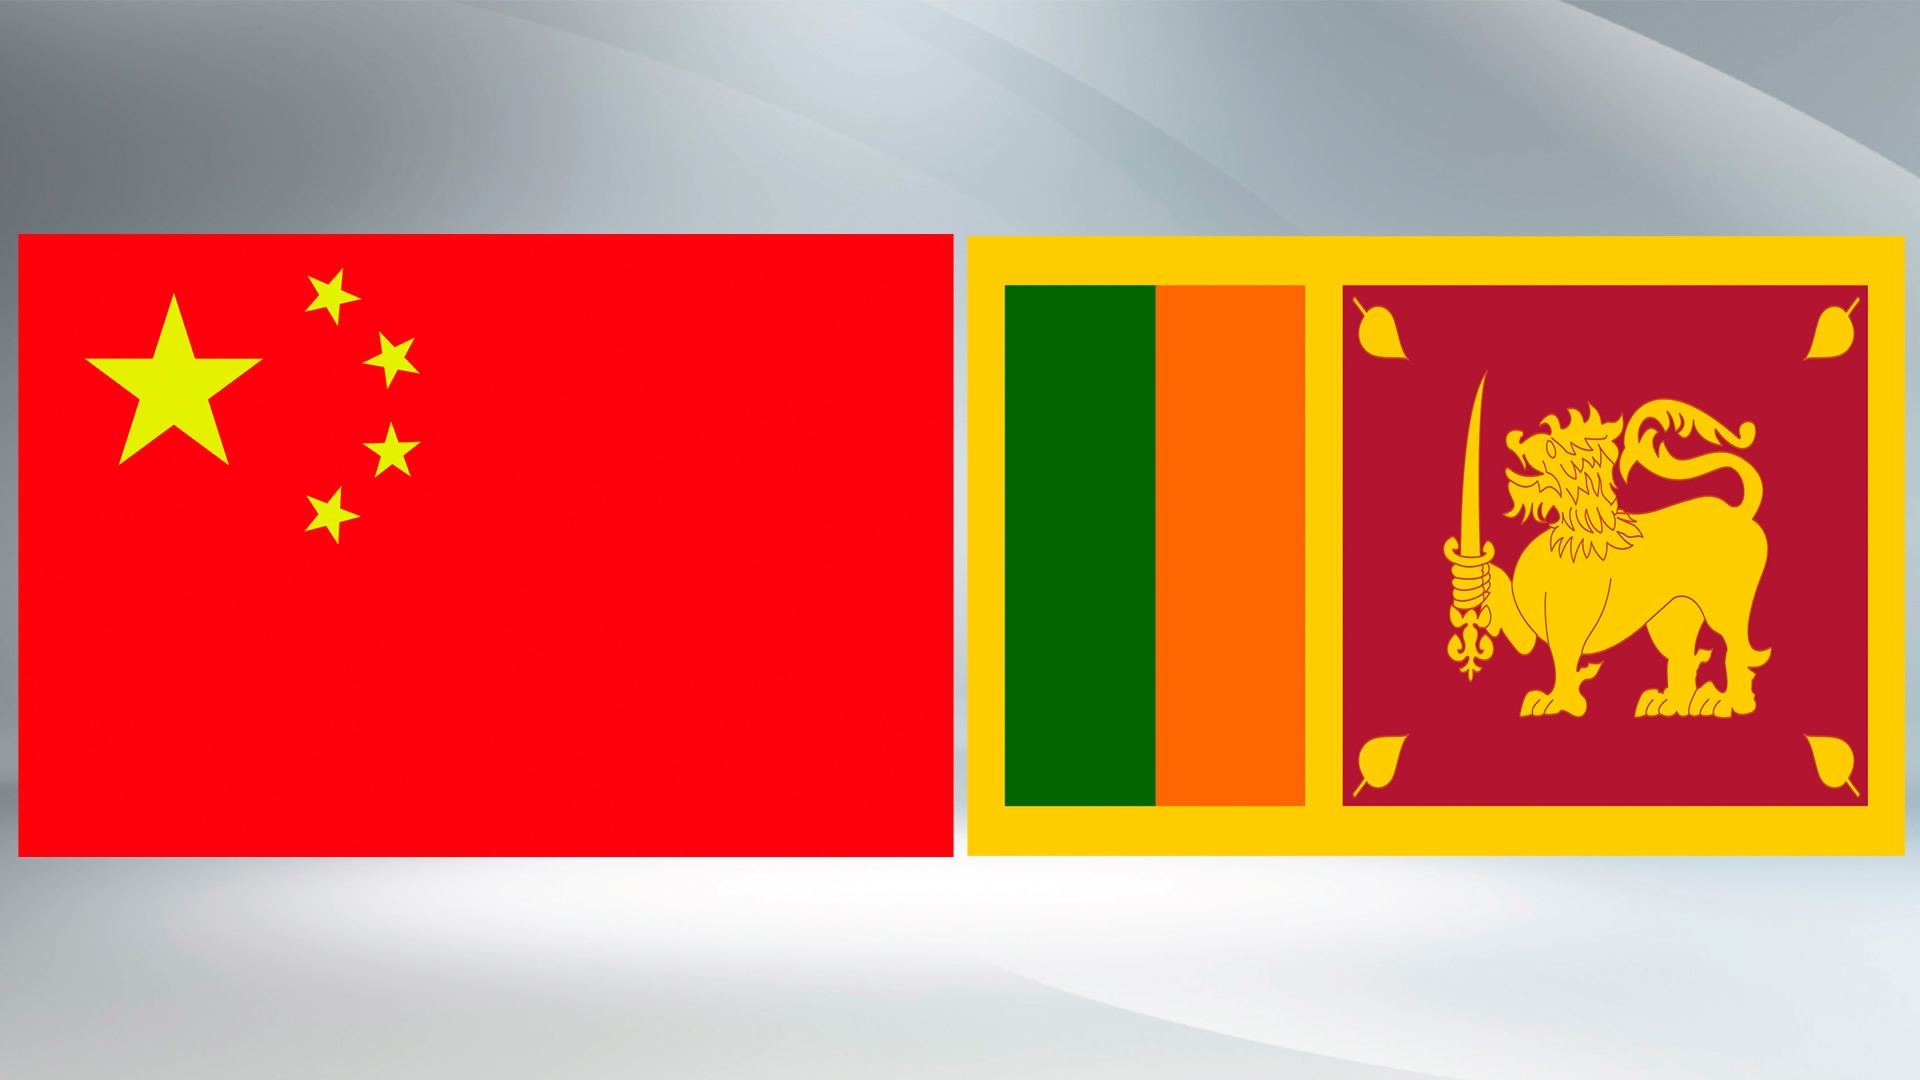 China-Sri Lanka cooperation under Belt and Road brings new opportunities for regional development: Chinese envoy